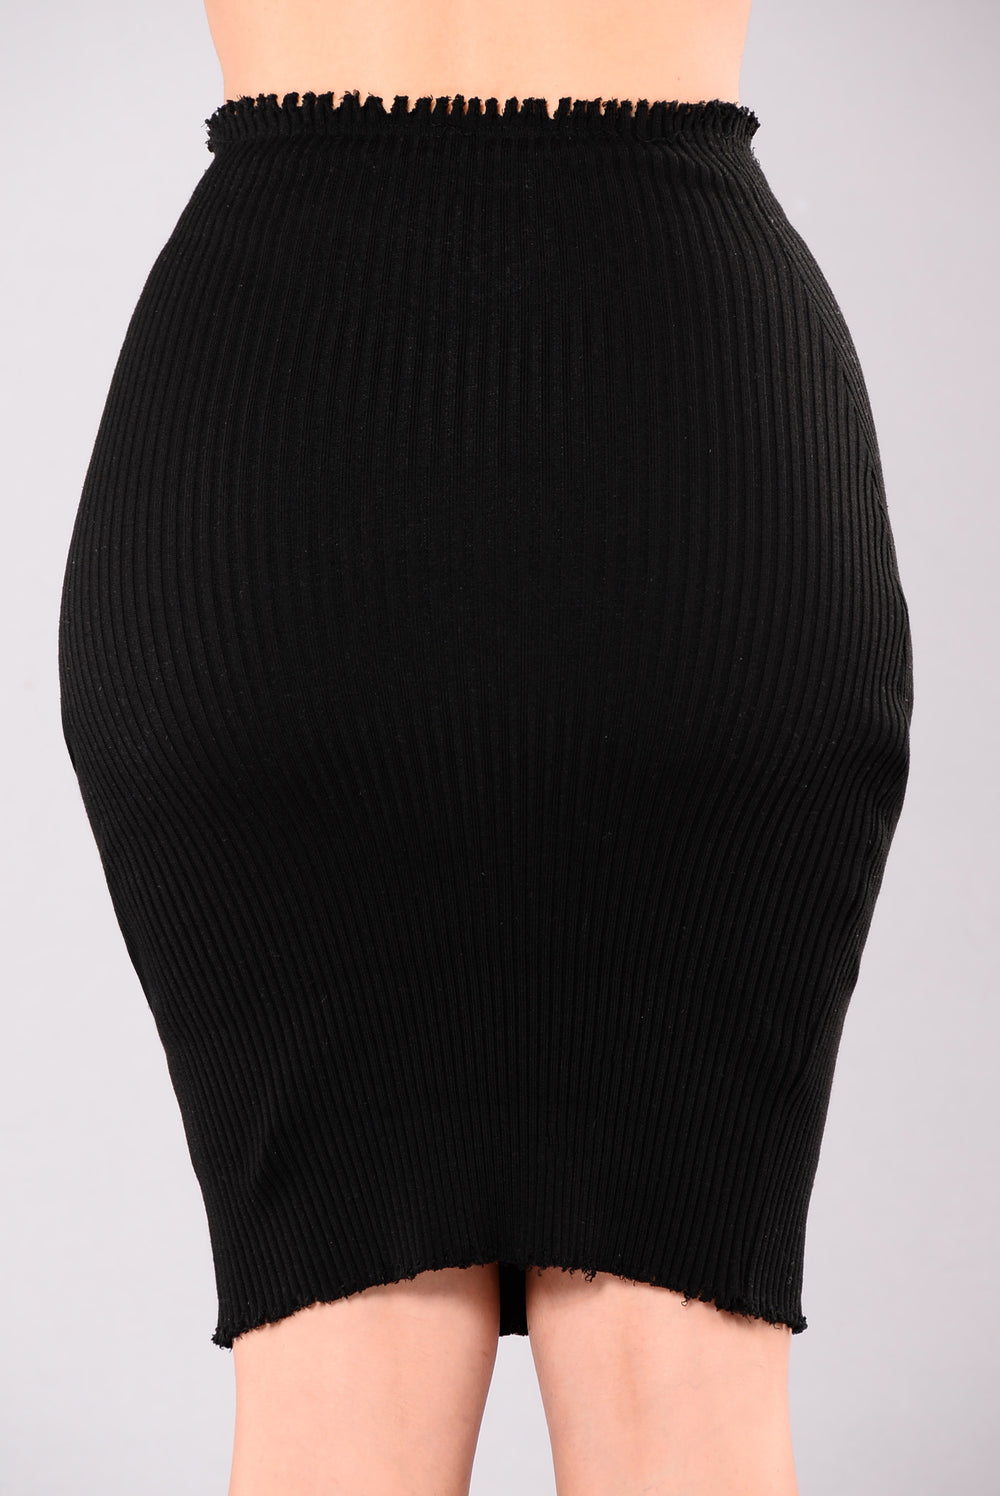 Marie Claire Ribbed Set - Black